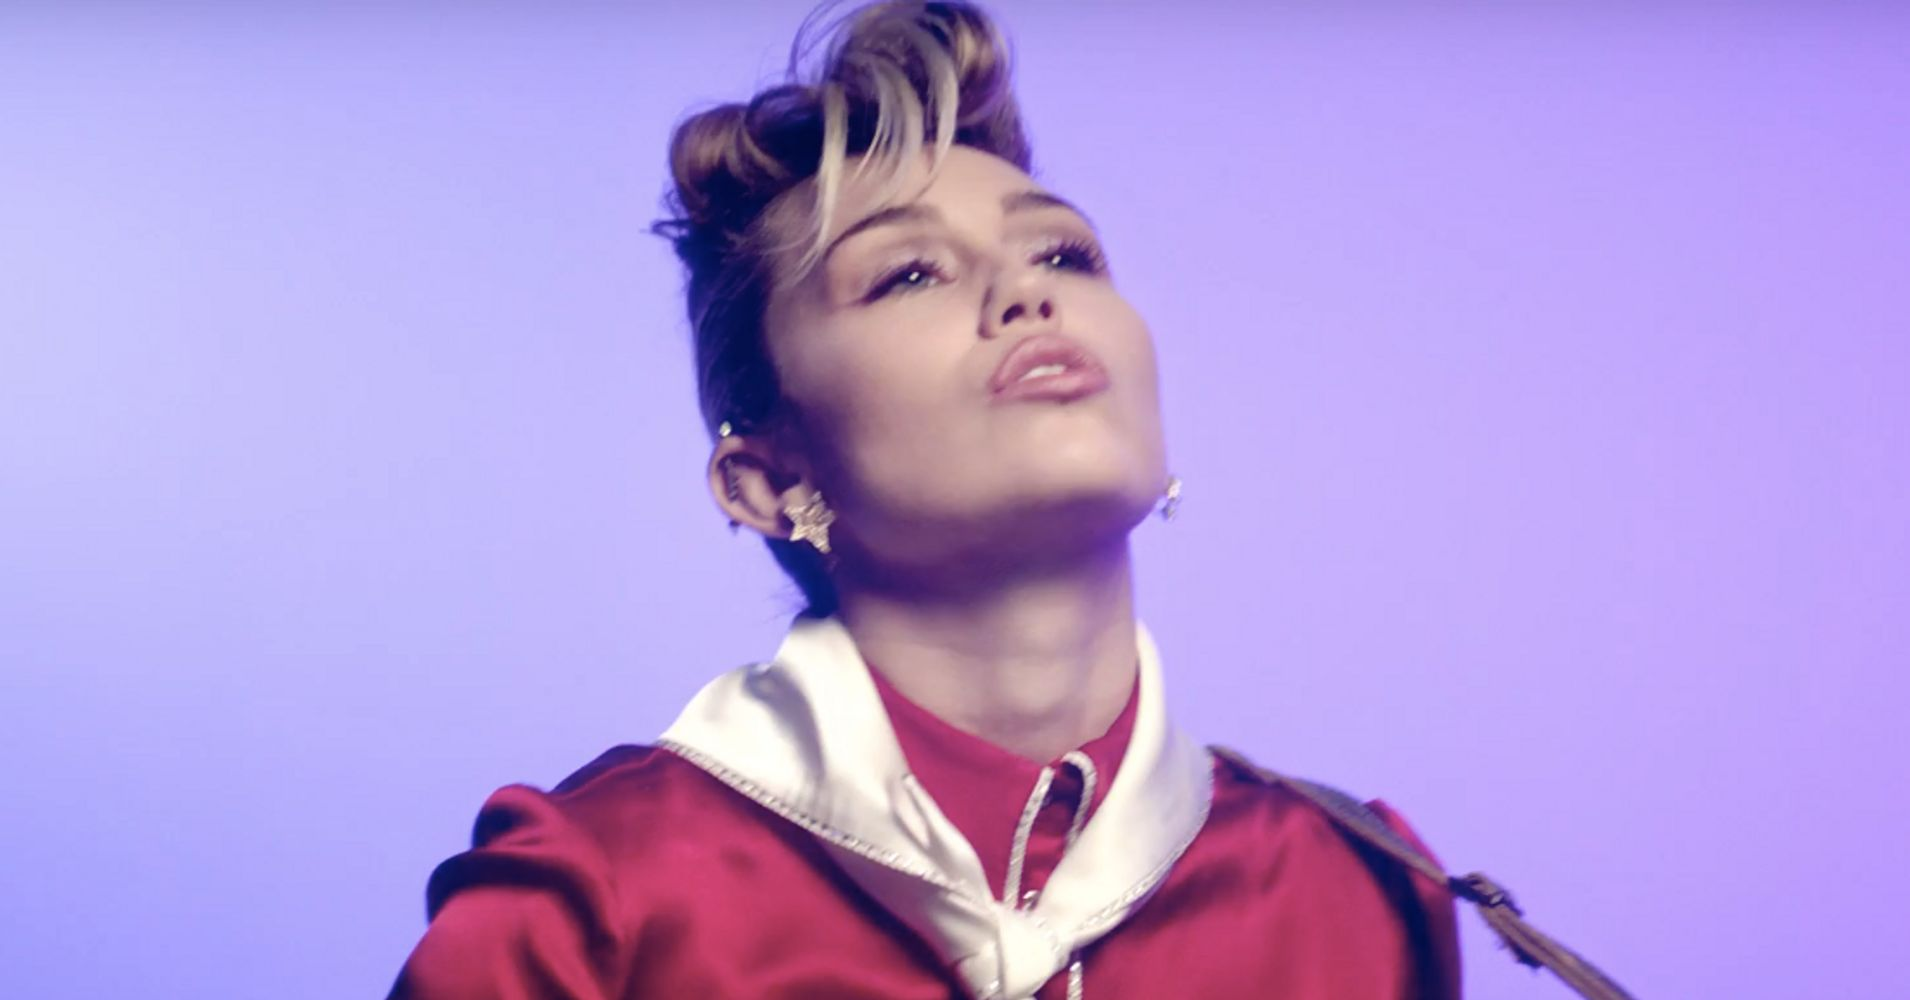 Miley Cyrus Is 'Younger Now' In Oldies-Inspired Music Video